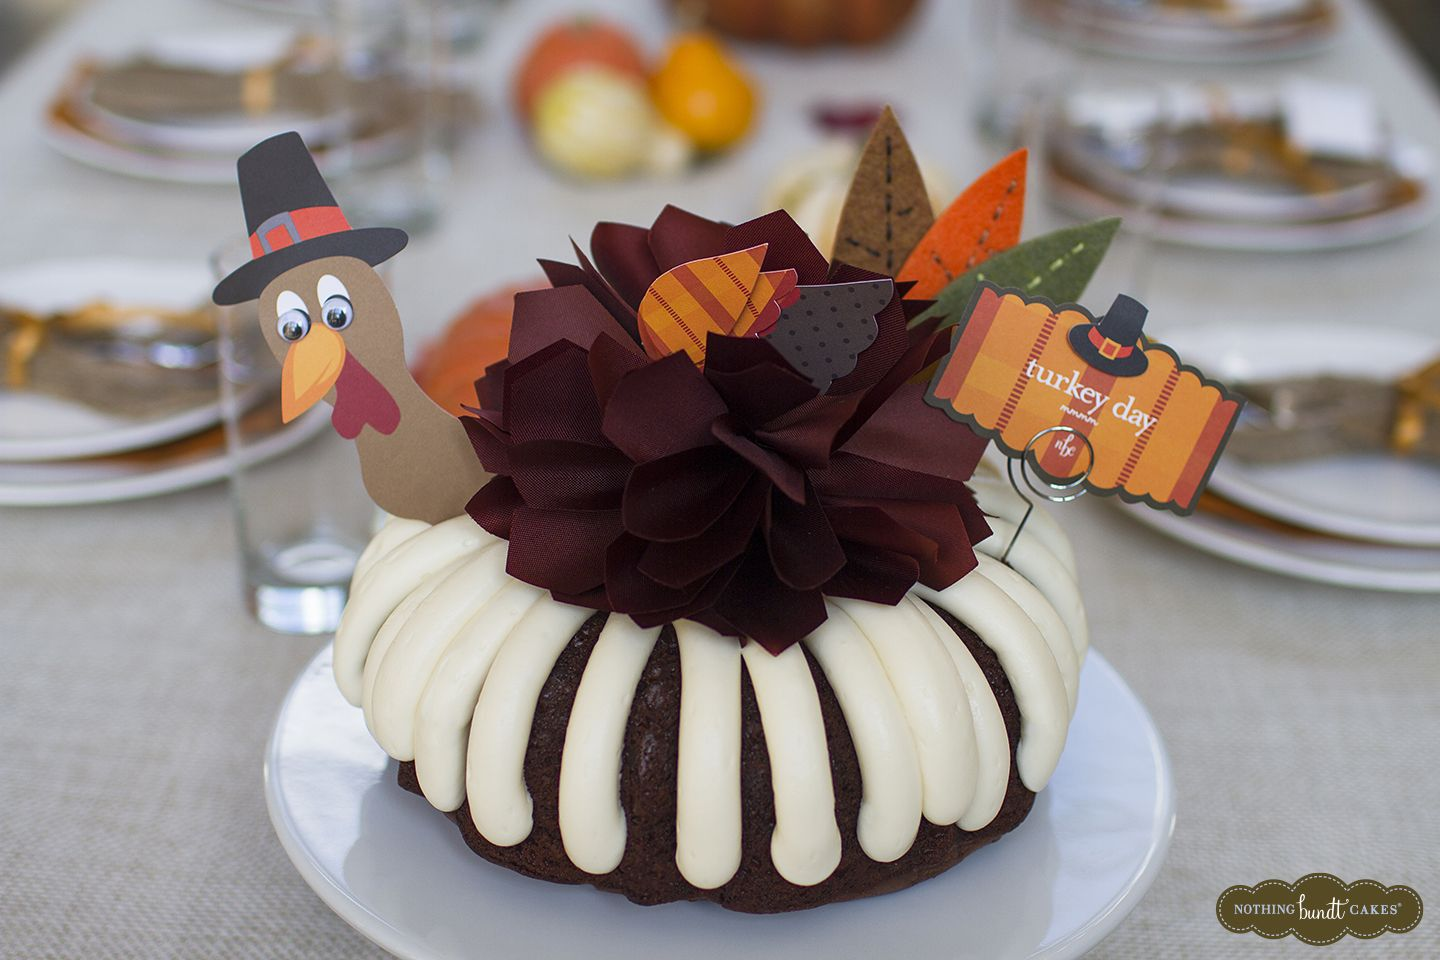 A Turkey Day Bundt Cake From Nothing Bundt Cakes Will Be Gobbled